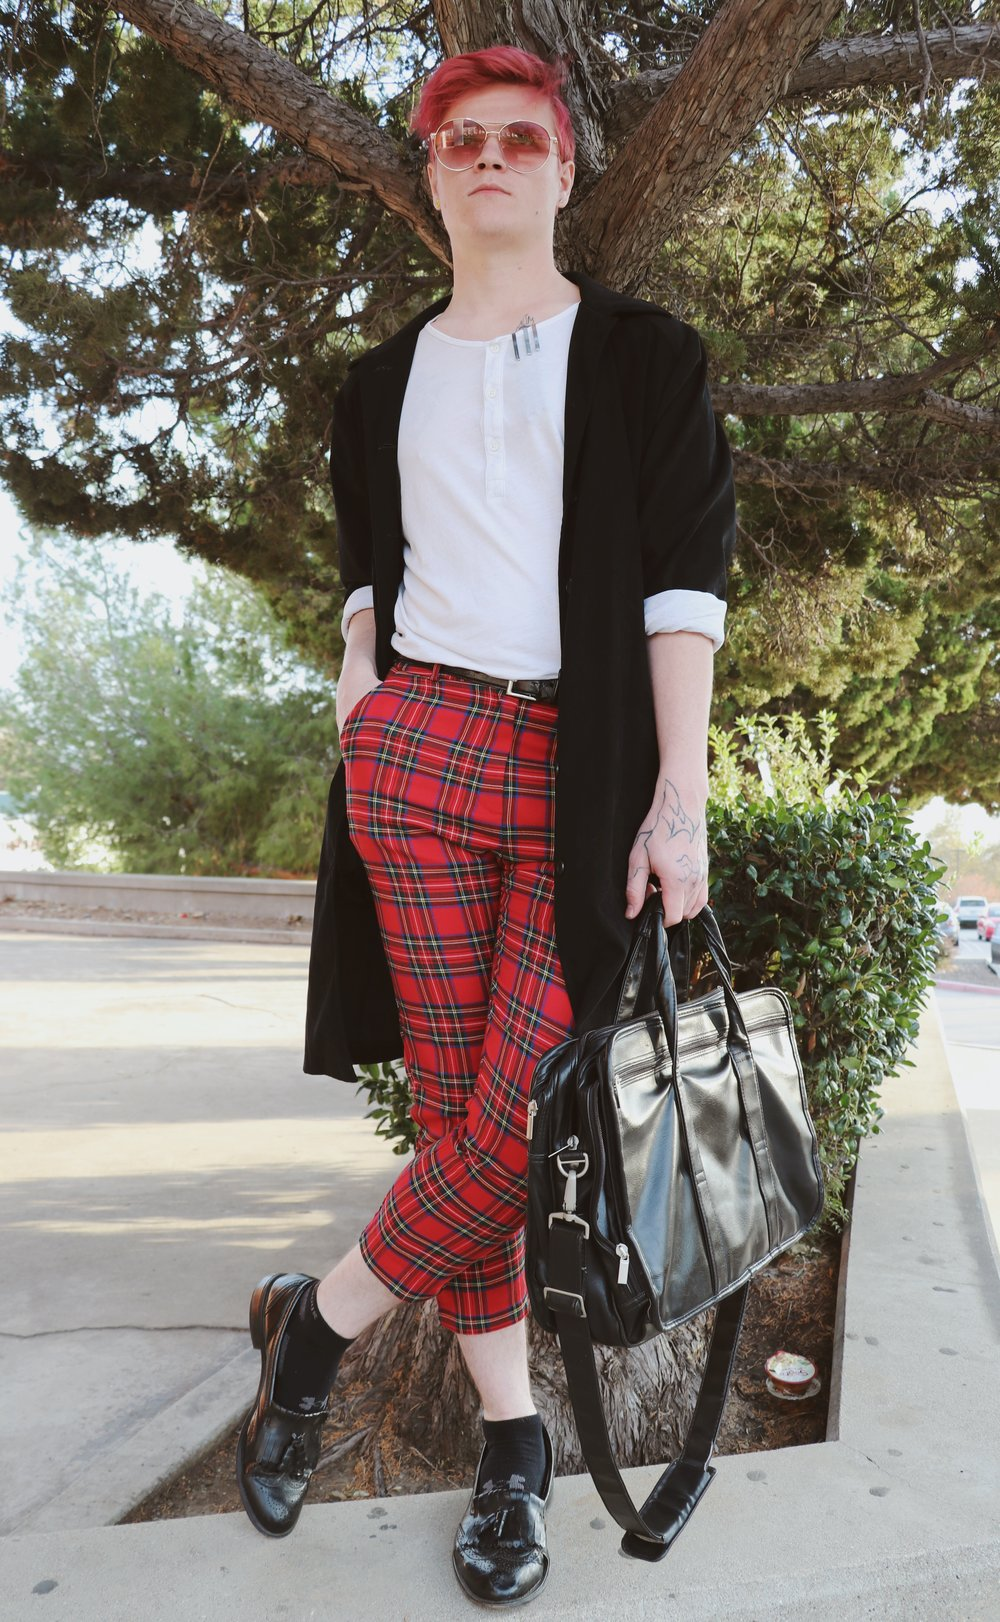 Chaffey student Zachariah Jolin wears a modern, edgy street-style outfit with black and white top layers to compliment his plaid pants; accessorized from head to toe with shades, a black leather belt, bag and oxfords.